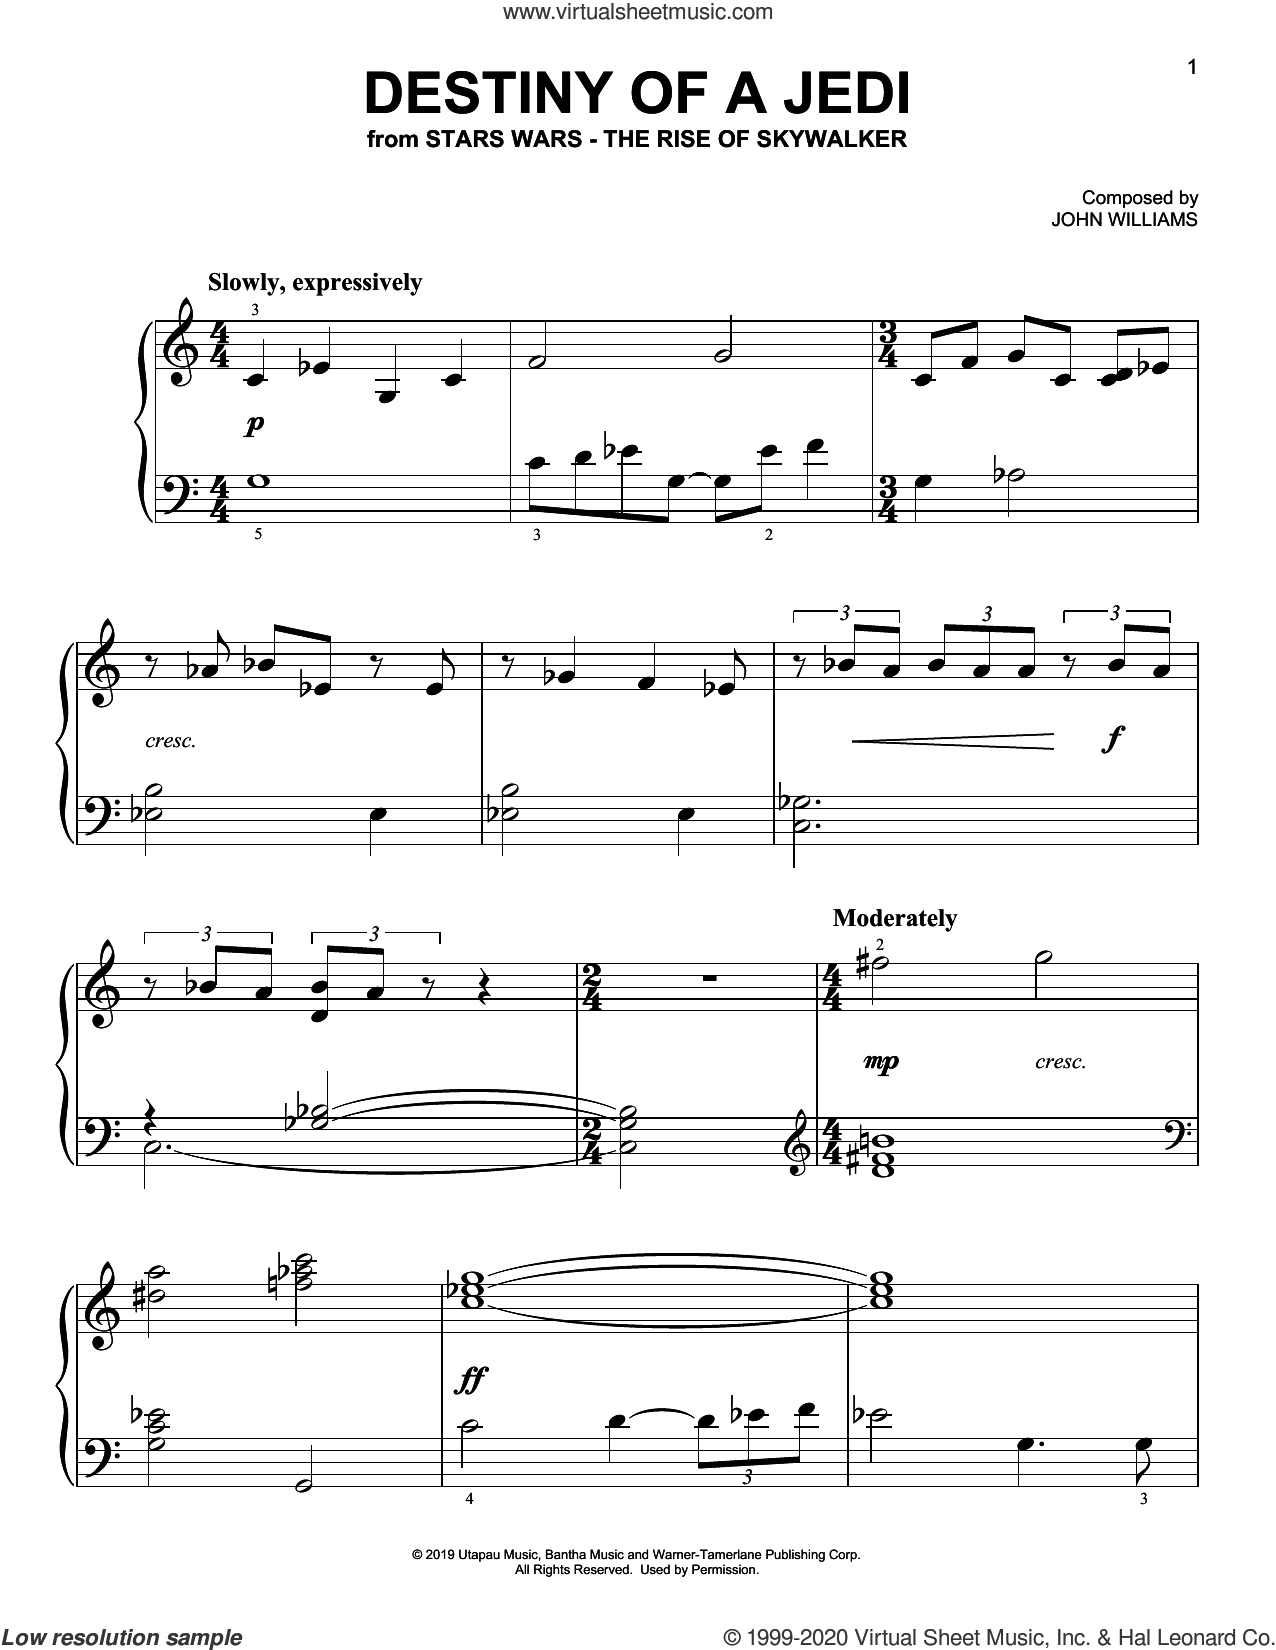 Destiny Of A Jedi (from The Rise Of Skywalker) sheet music for piano solo by John Williams, easy skill level